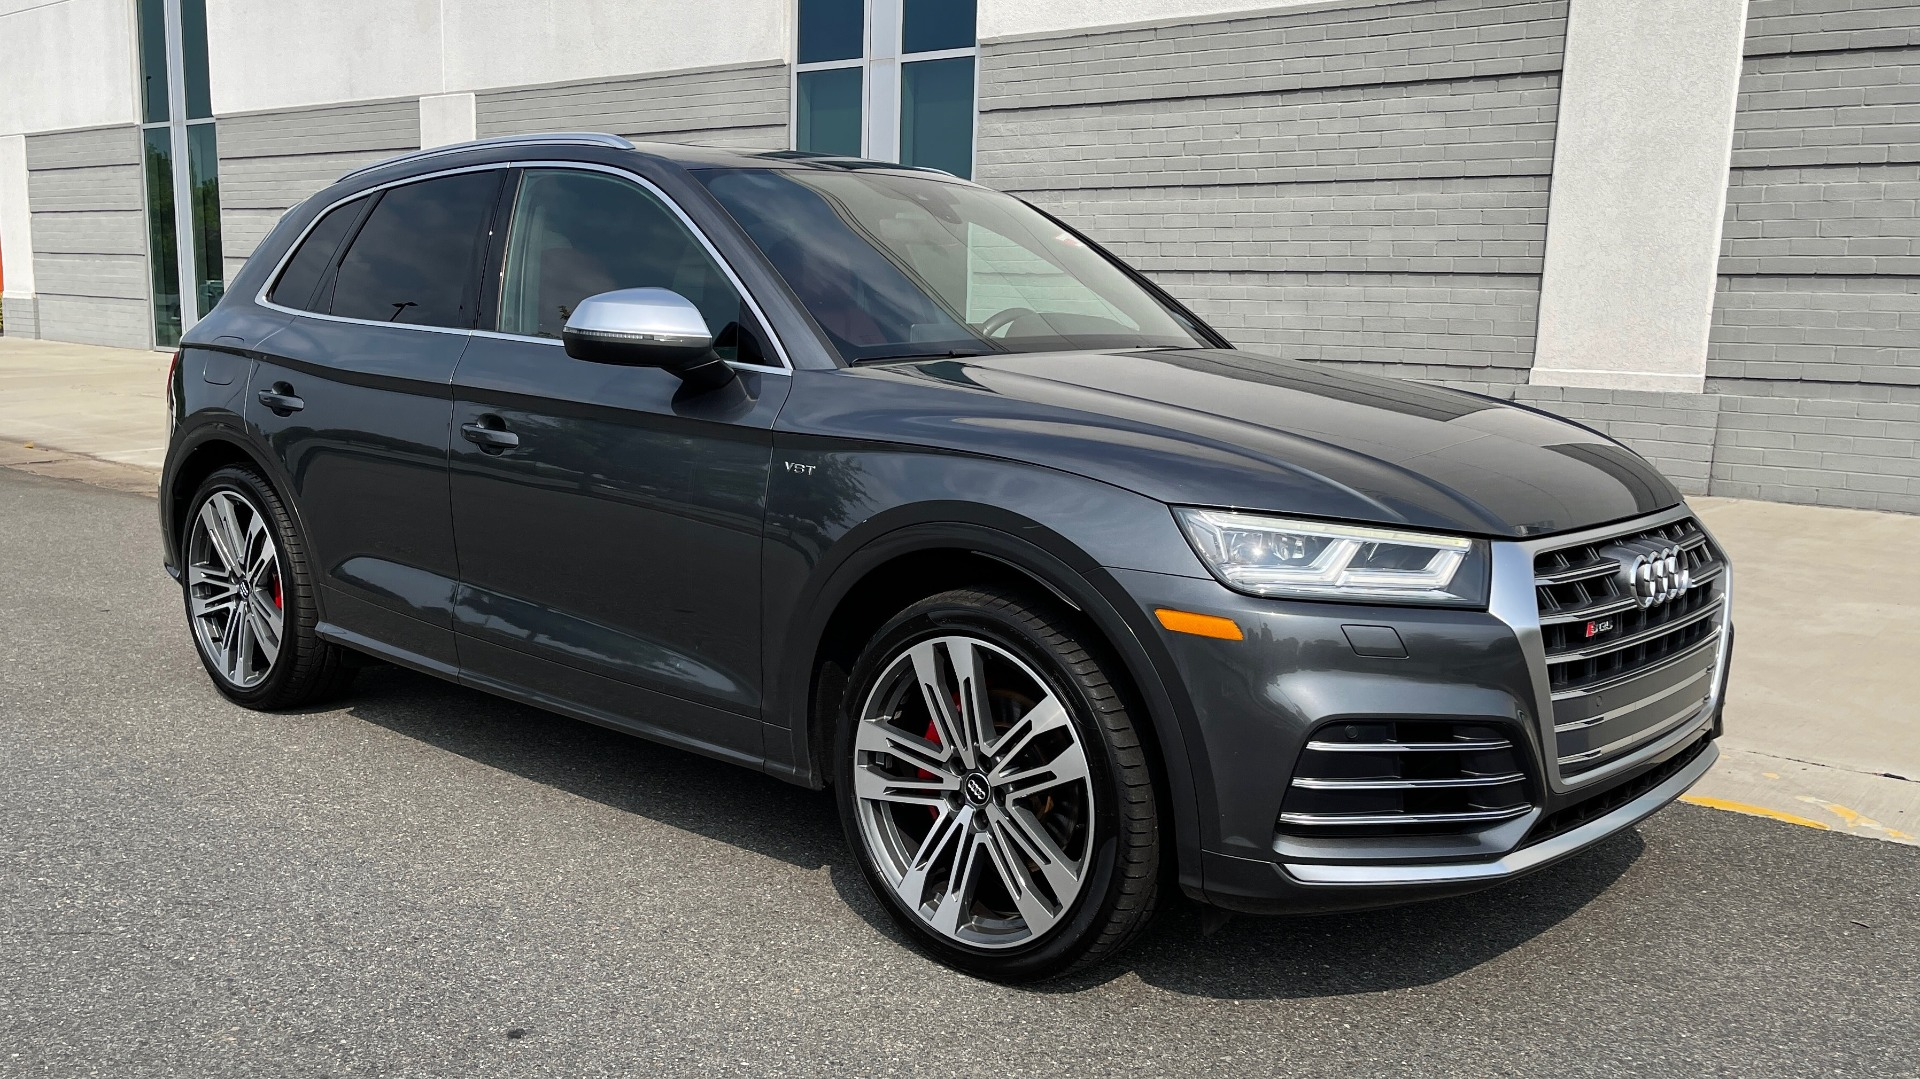 Used 2018 Audi SQ5 PREMIUM PLUS / S-SPORT / NAV / B&O SND / SUNROOF / REARVIEW for sale $43,995 at Formula Imports in Charlotte NC 28227 7